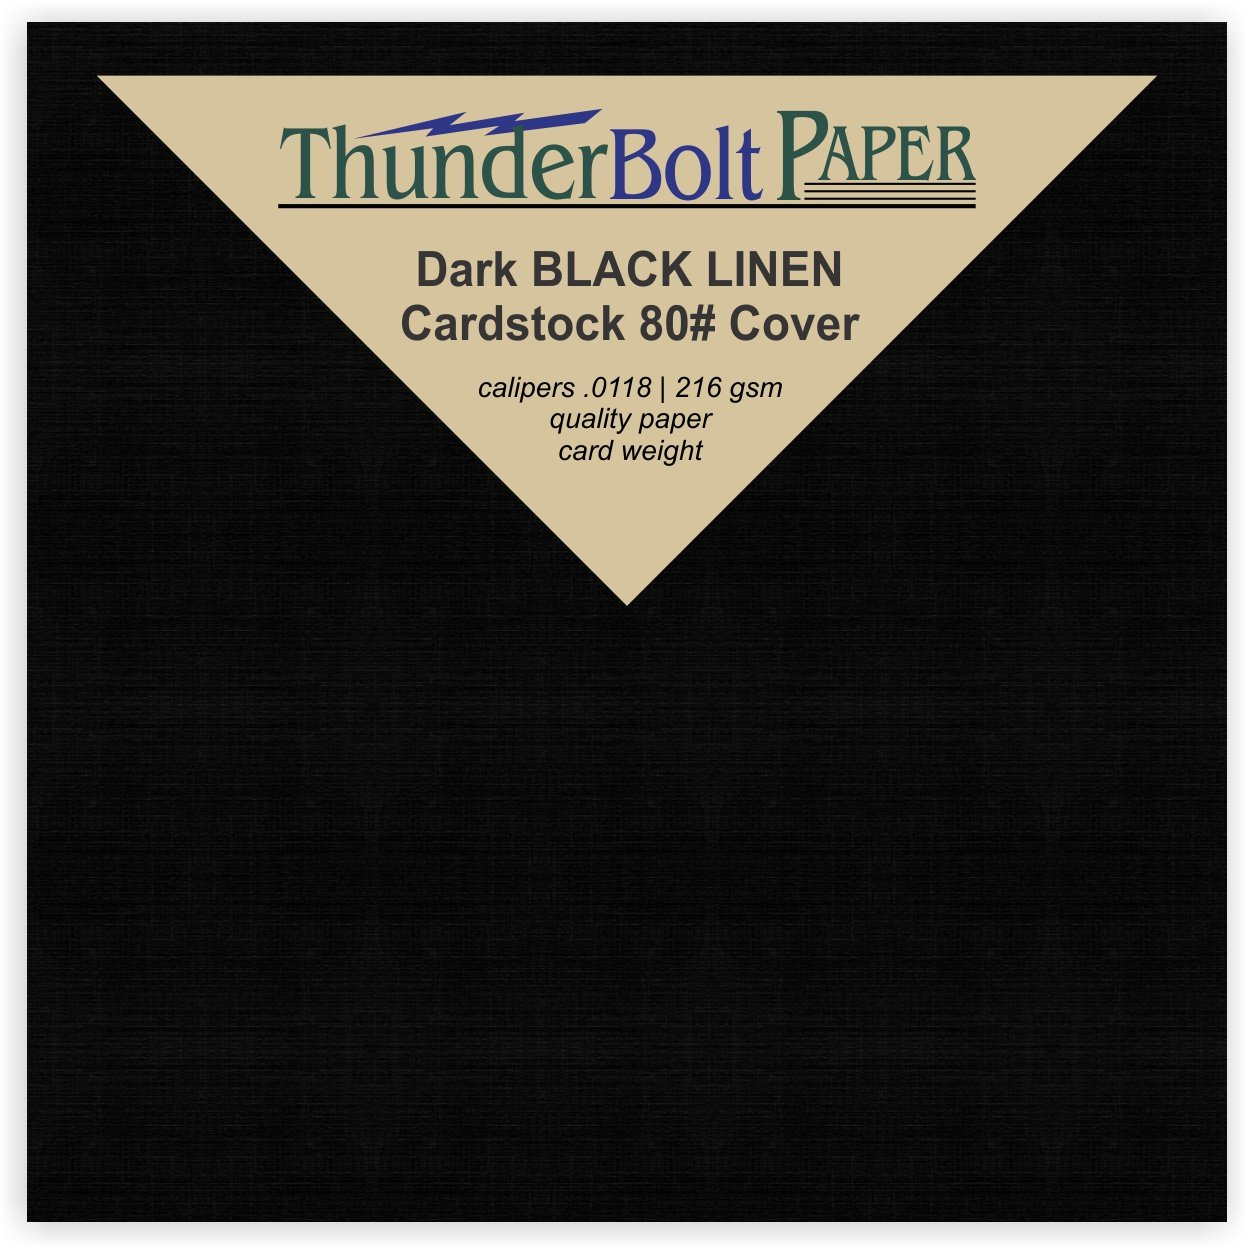 300 Black Linen 80# Cover Paper Sheets - 4'' X 4'' (4X4 Inches) Small Square Card Size - Card Weight - Deep Dye, Fine Linen Textured Finish - Quality Cardstock